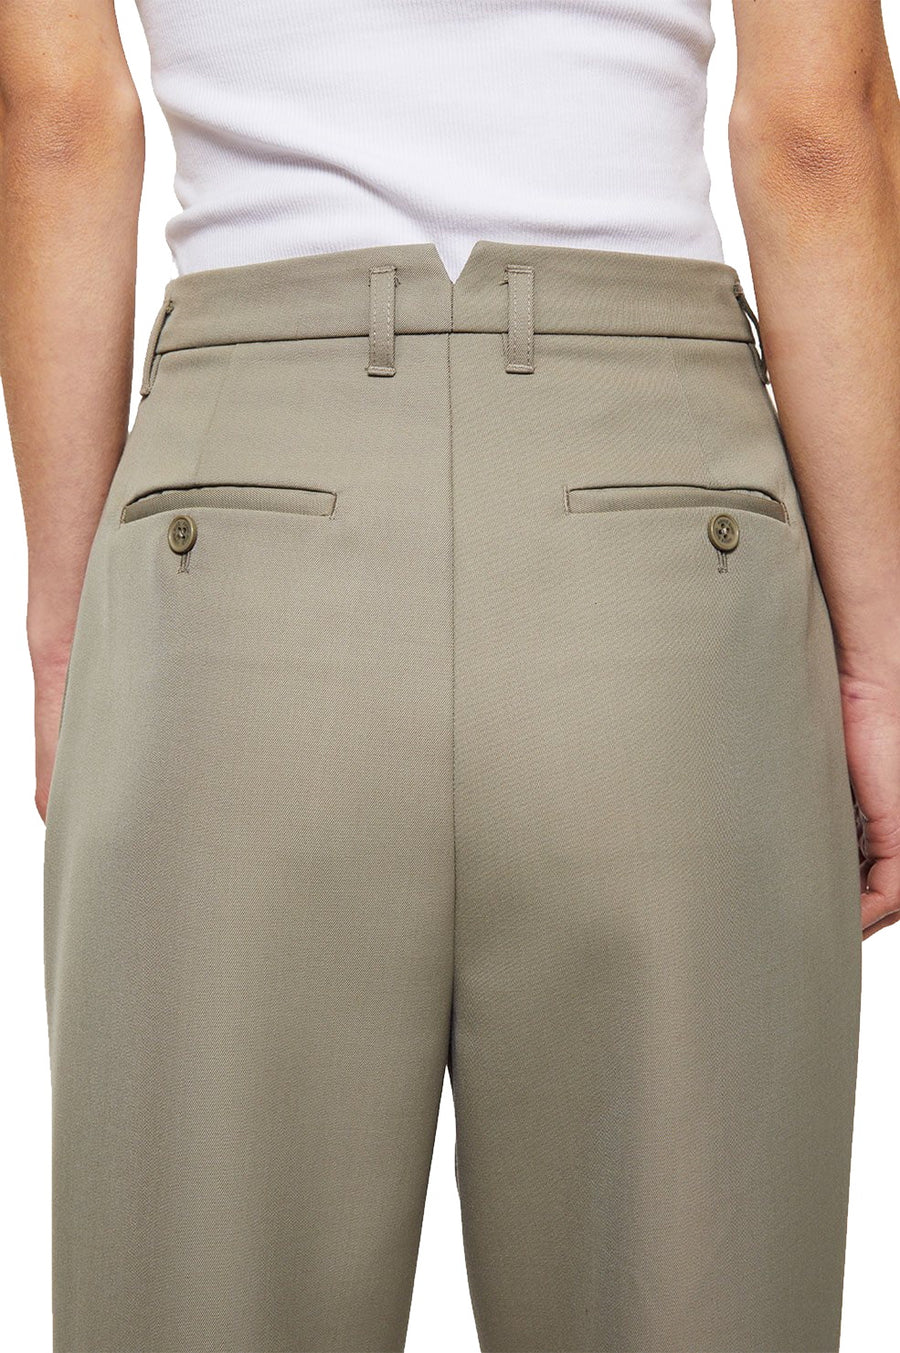 Mycah Trouser - Green Khaki